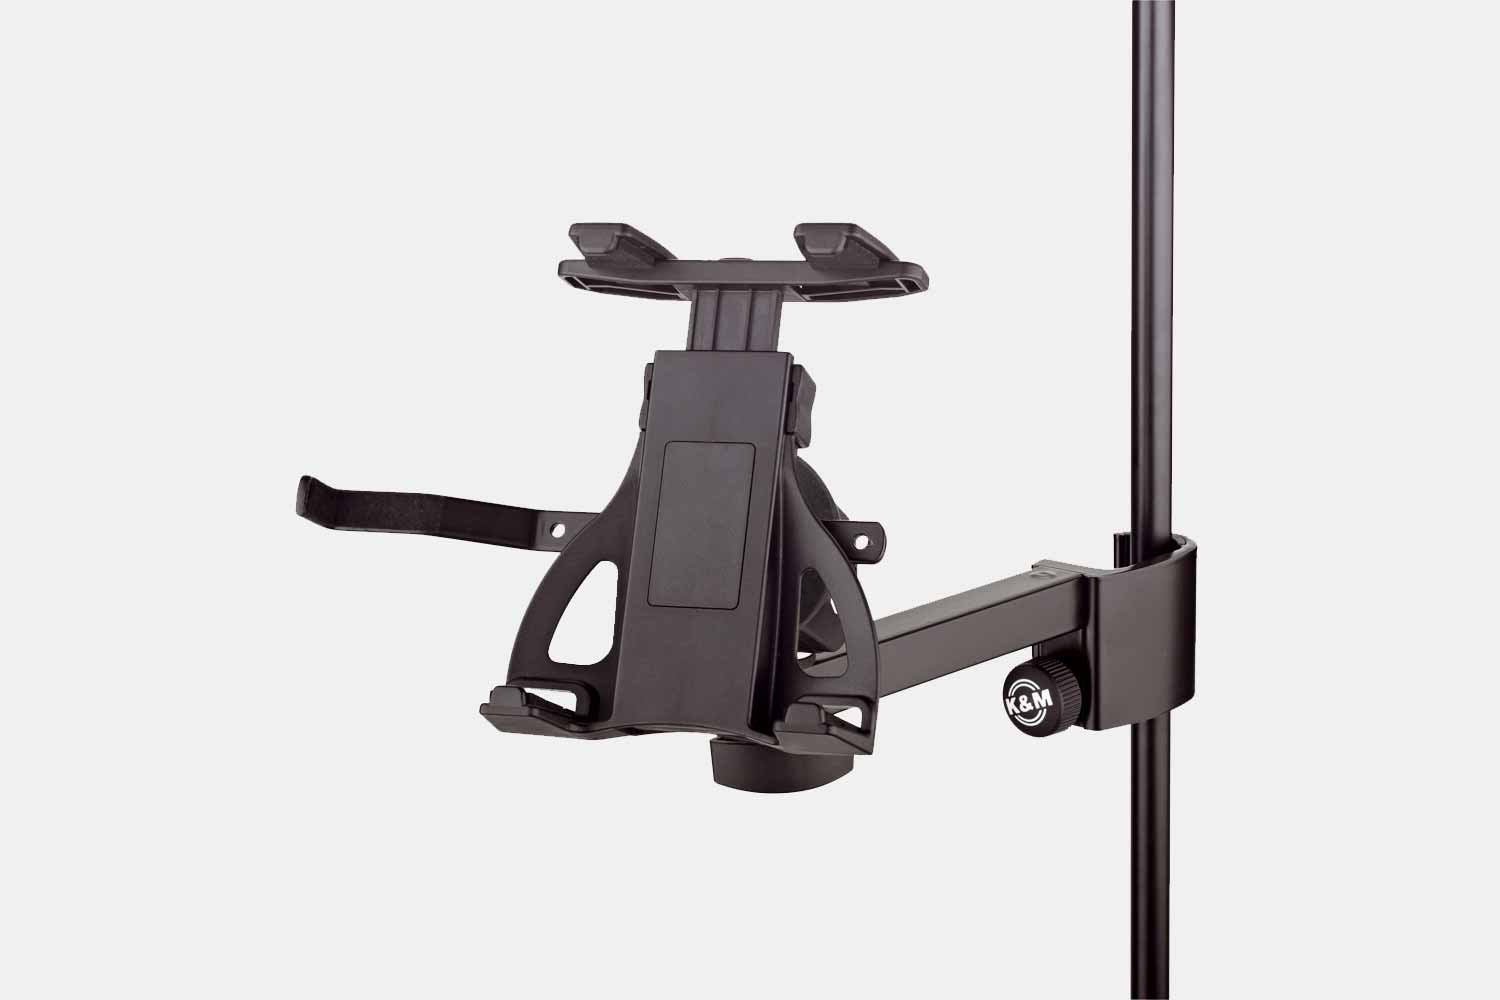 K&M 19740 Tablet PC Holder (5522367053988)